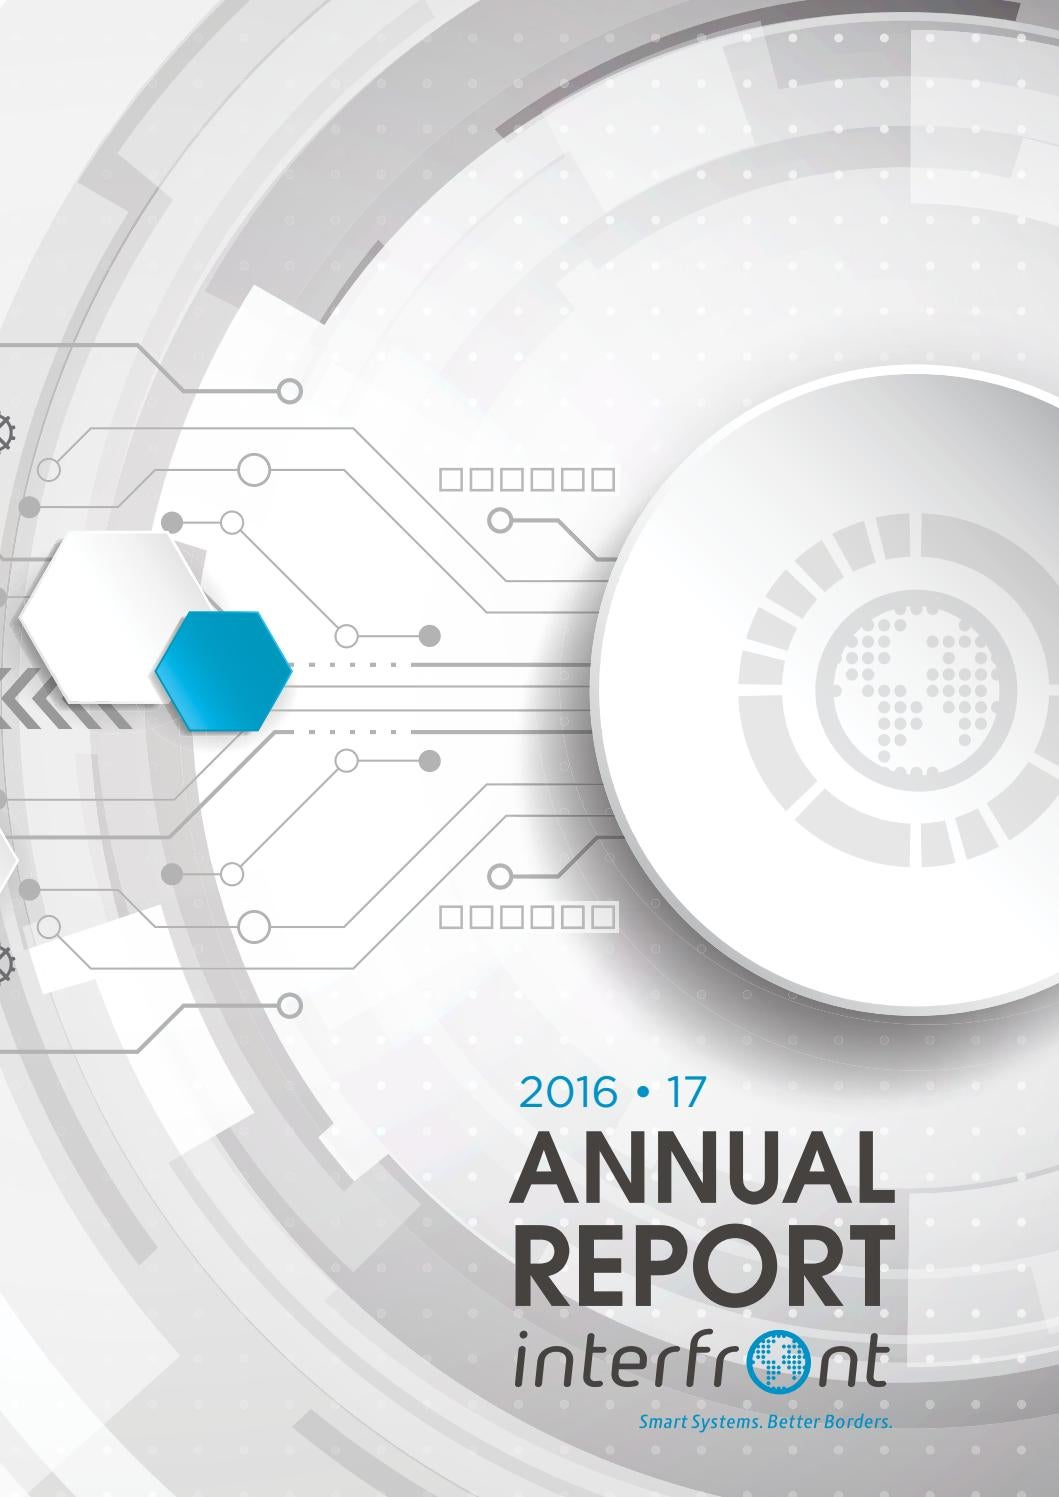 Interfront Annual Report by GAPdesign - issuu